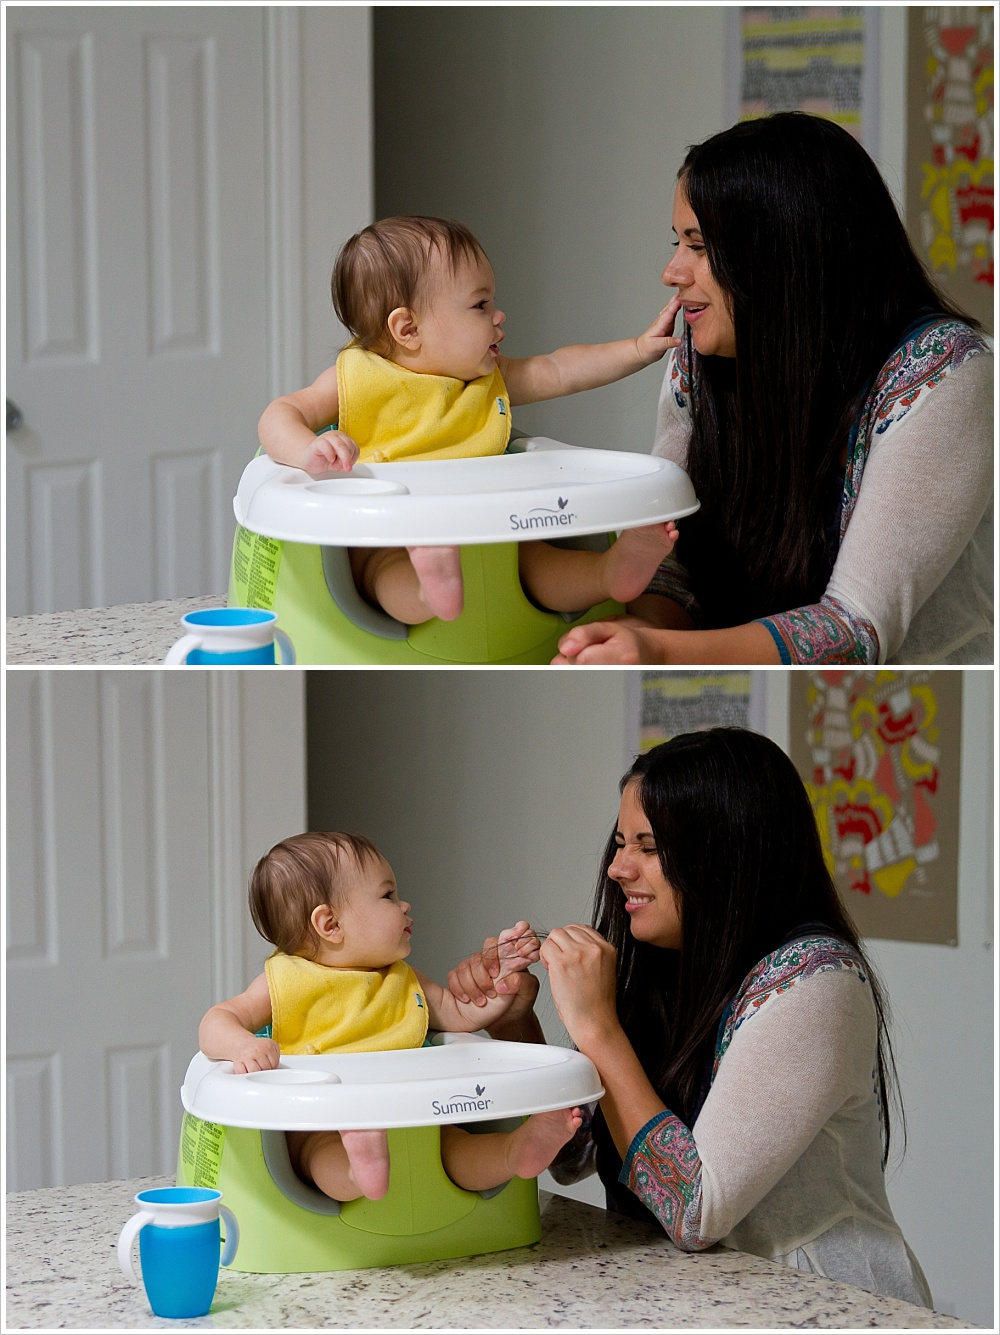 baby and mom in kitchen | lifestyle family photography in Cedar Park, Texas | Jason & Melaina Photography